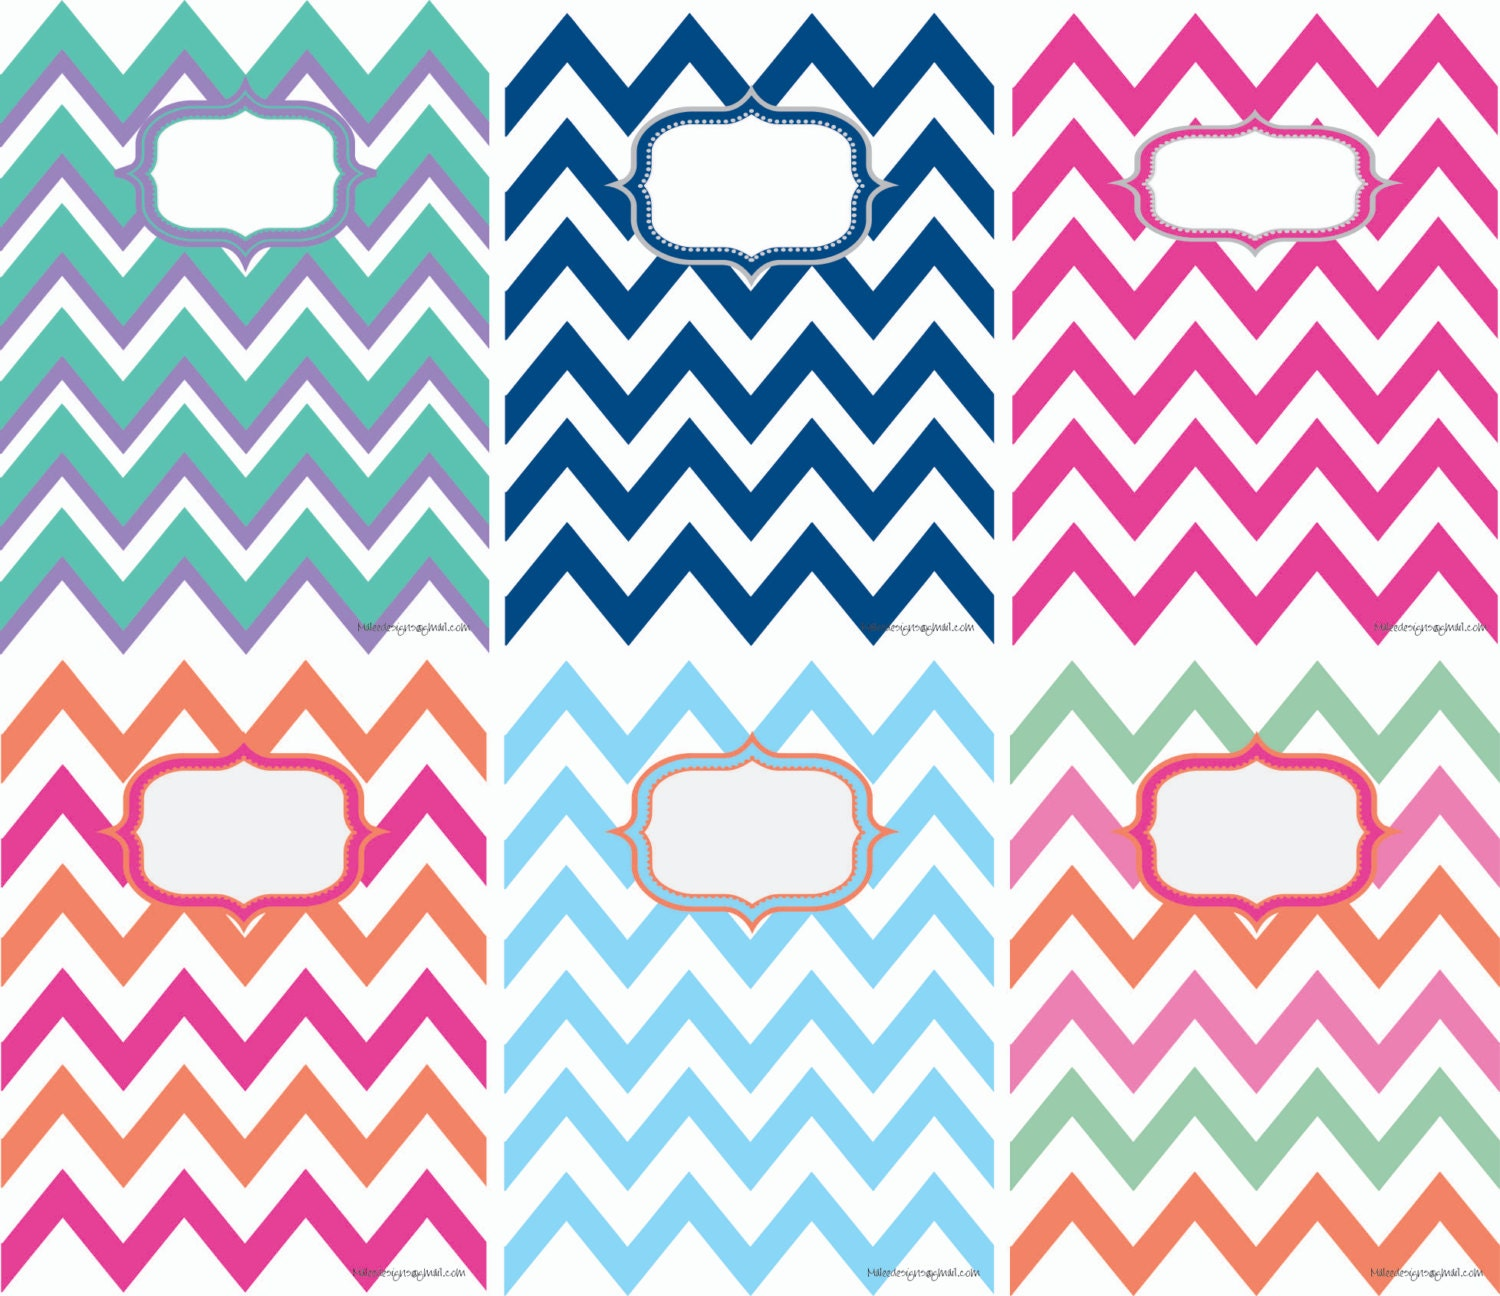 Printable Chevron Binder Covers